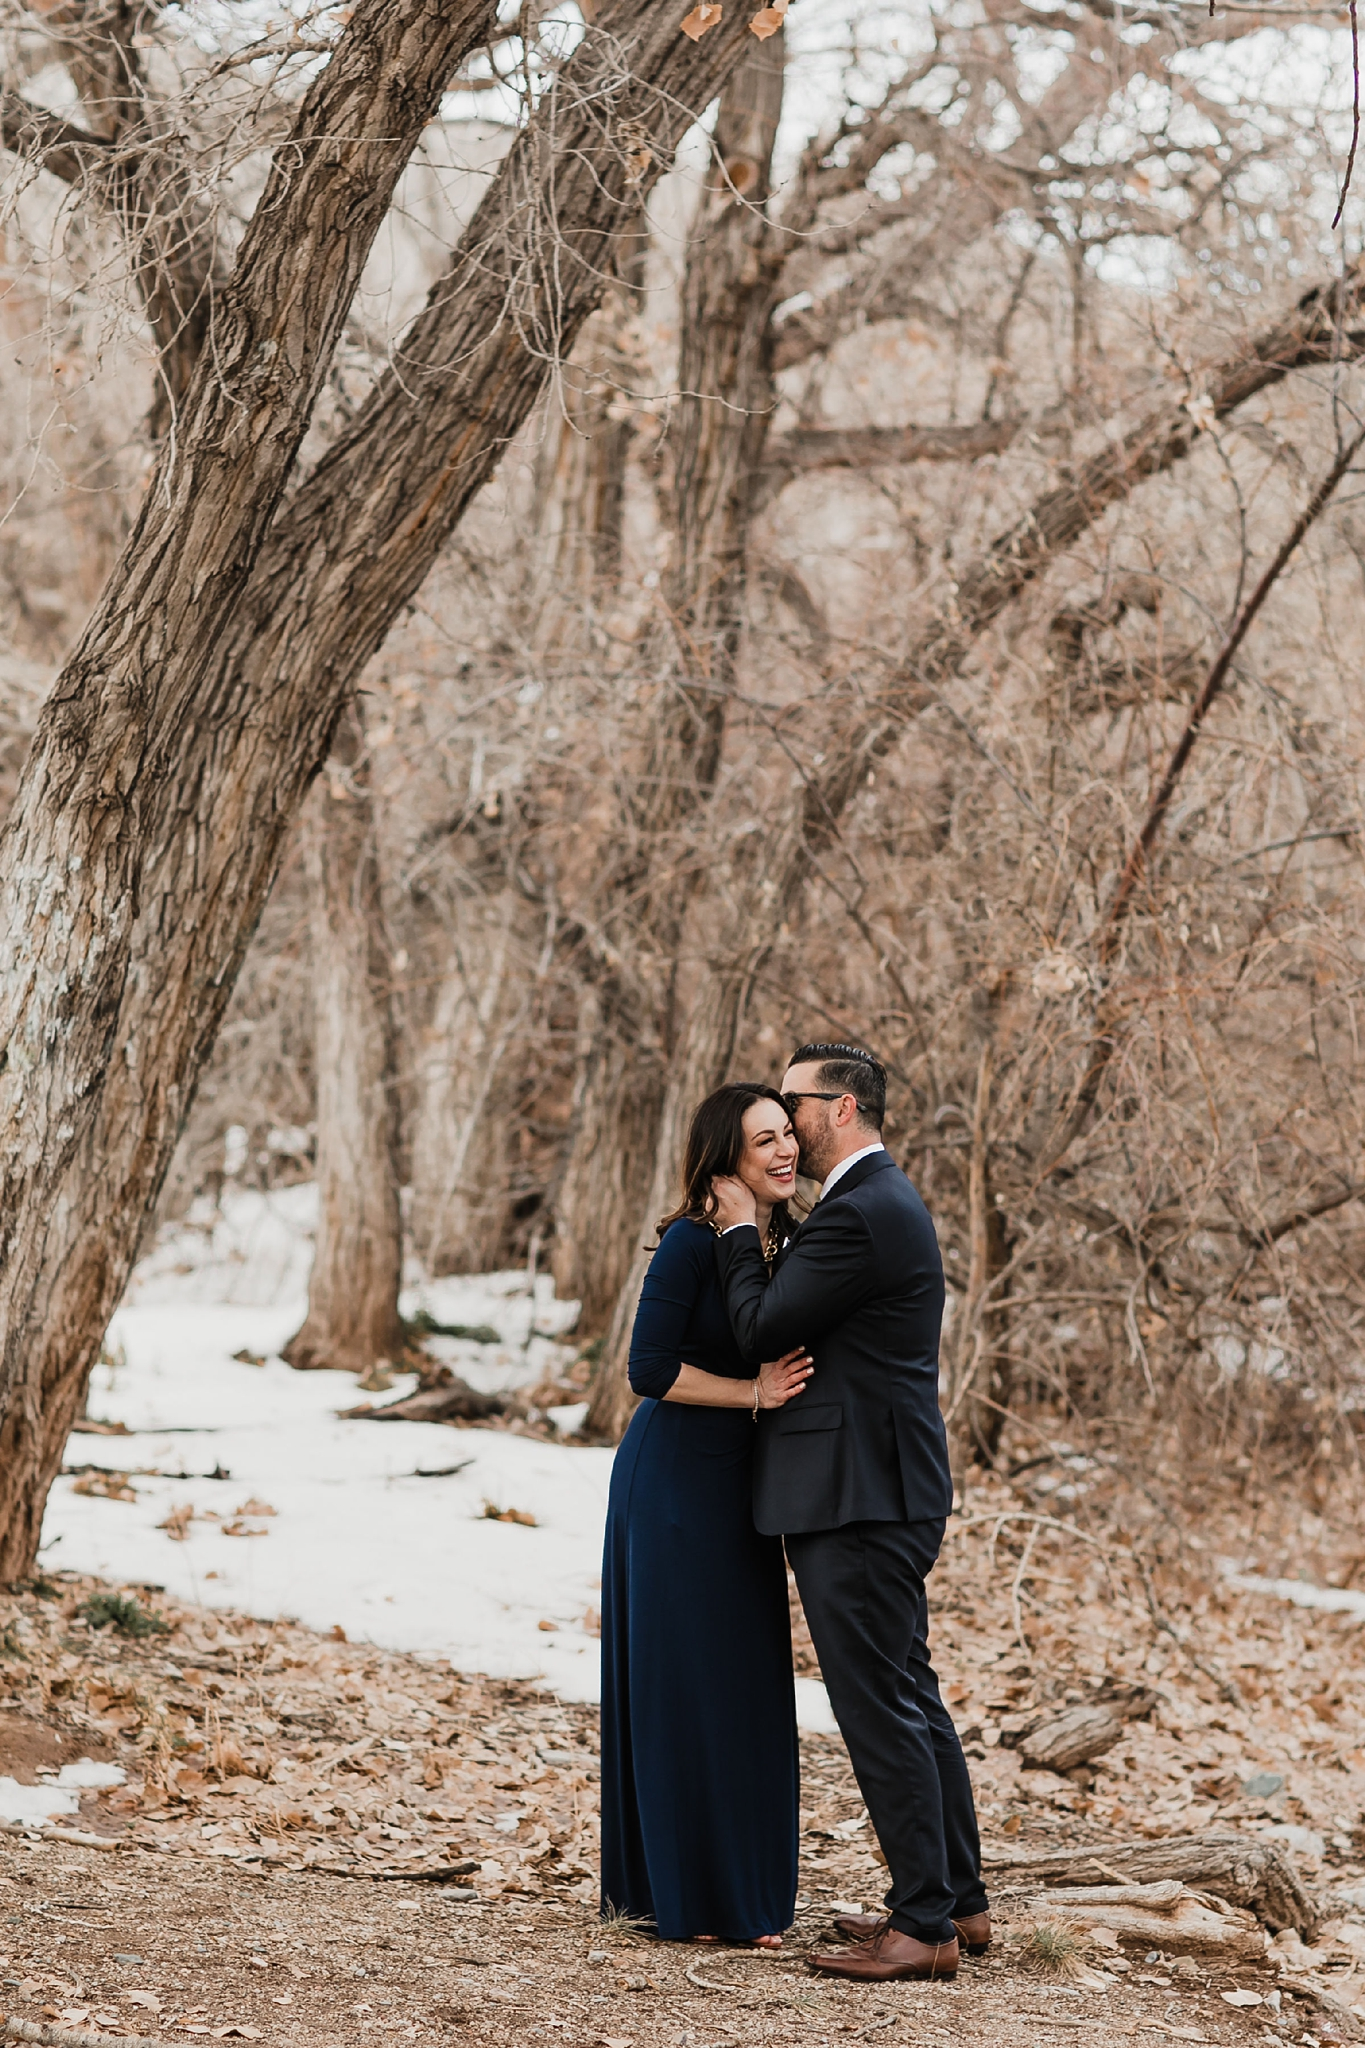 Alicia+lucia+photography+-+albuquerque+wedding+photographer+-+santa+fe+wedding+photography+-+new+mexico+wedding+photographer+-+new+mexico+wedding+-+engagement+-+winter+engagement+-+albuquerque+engagement_0010.jpg